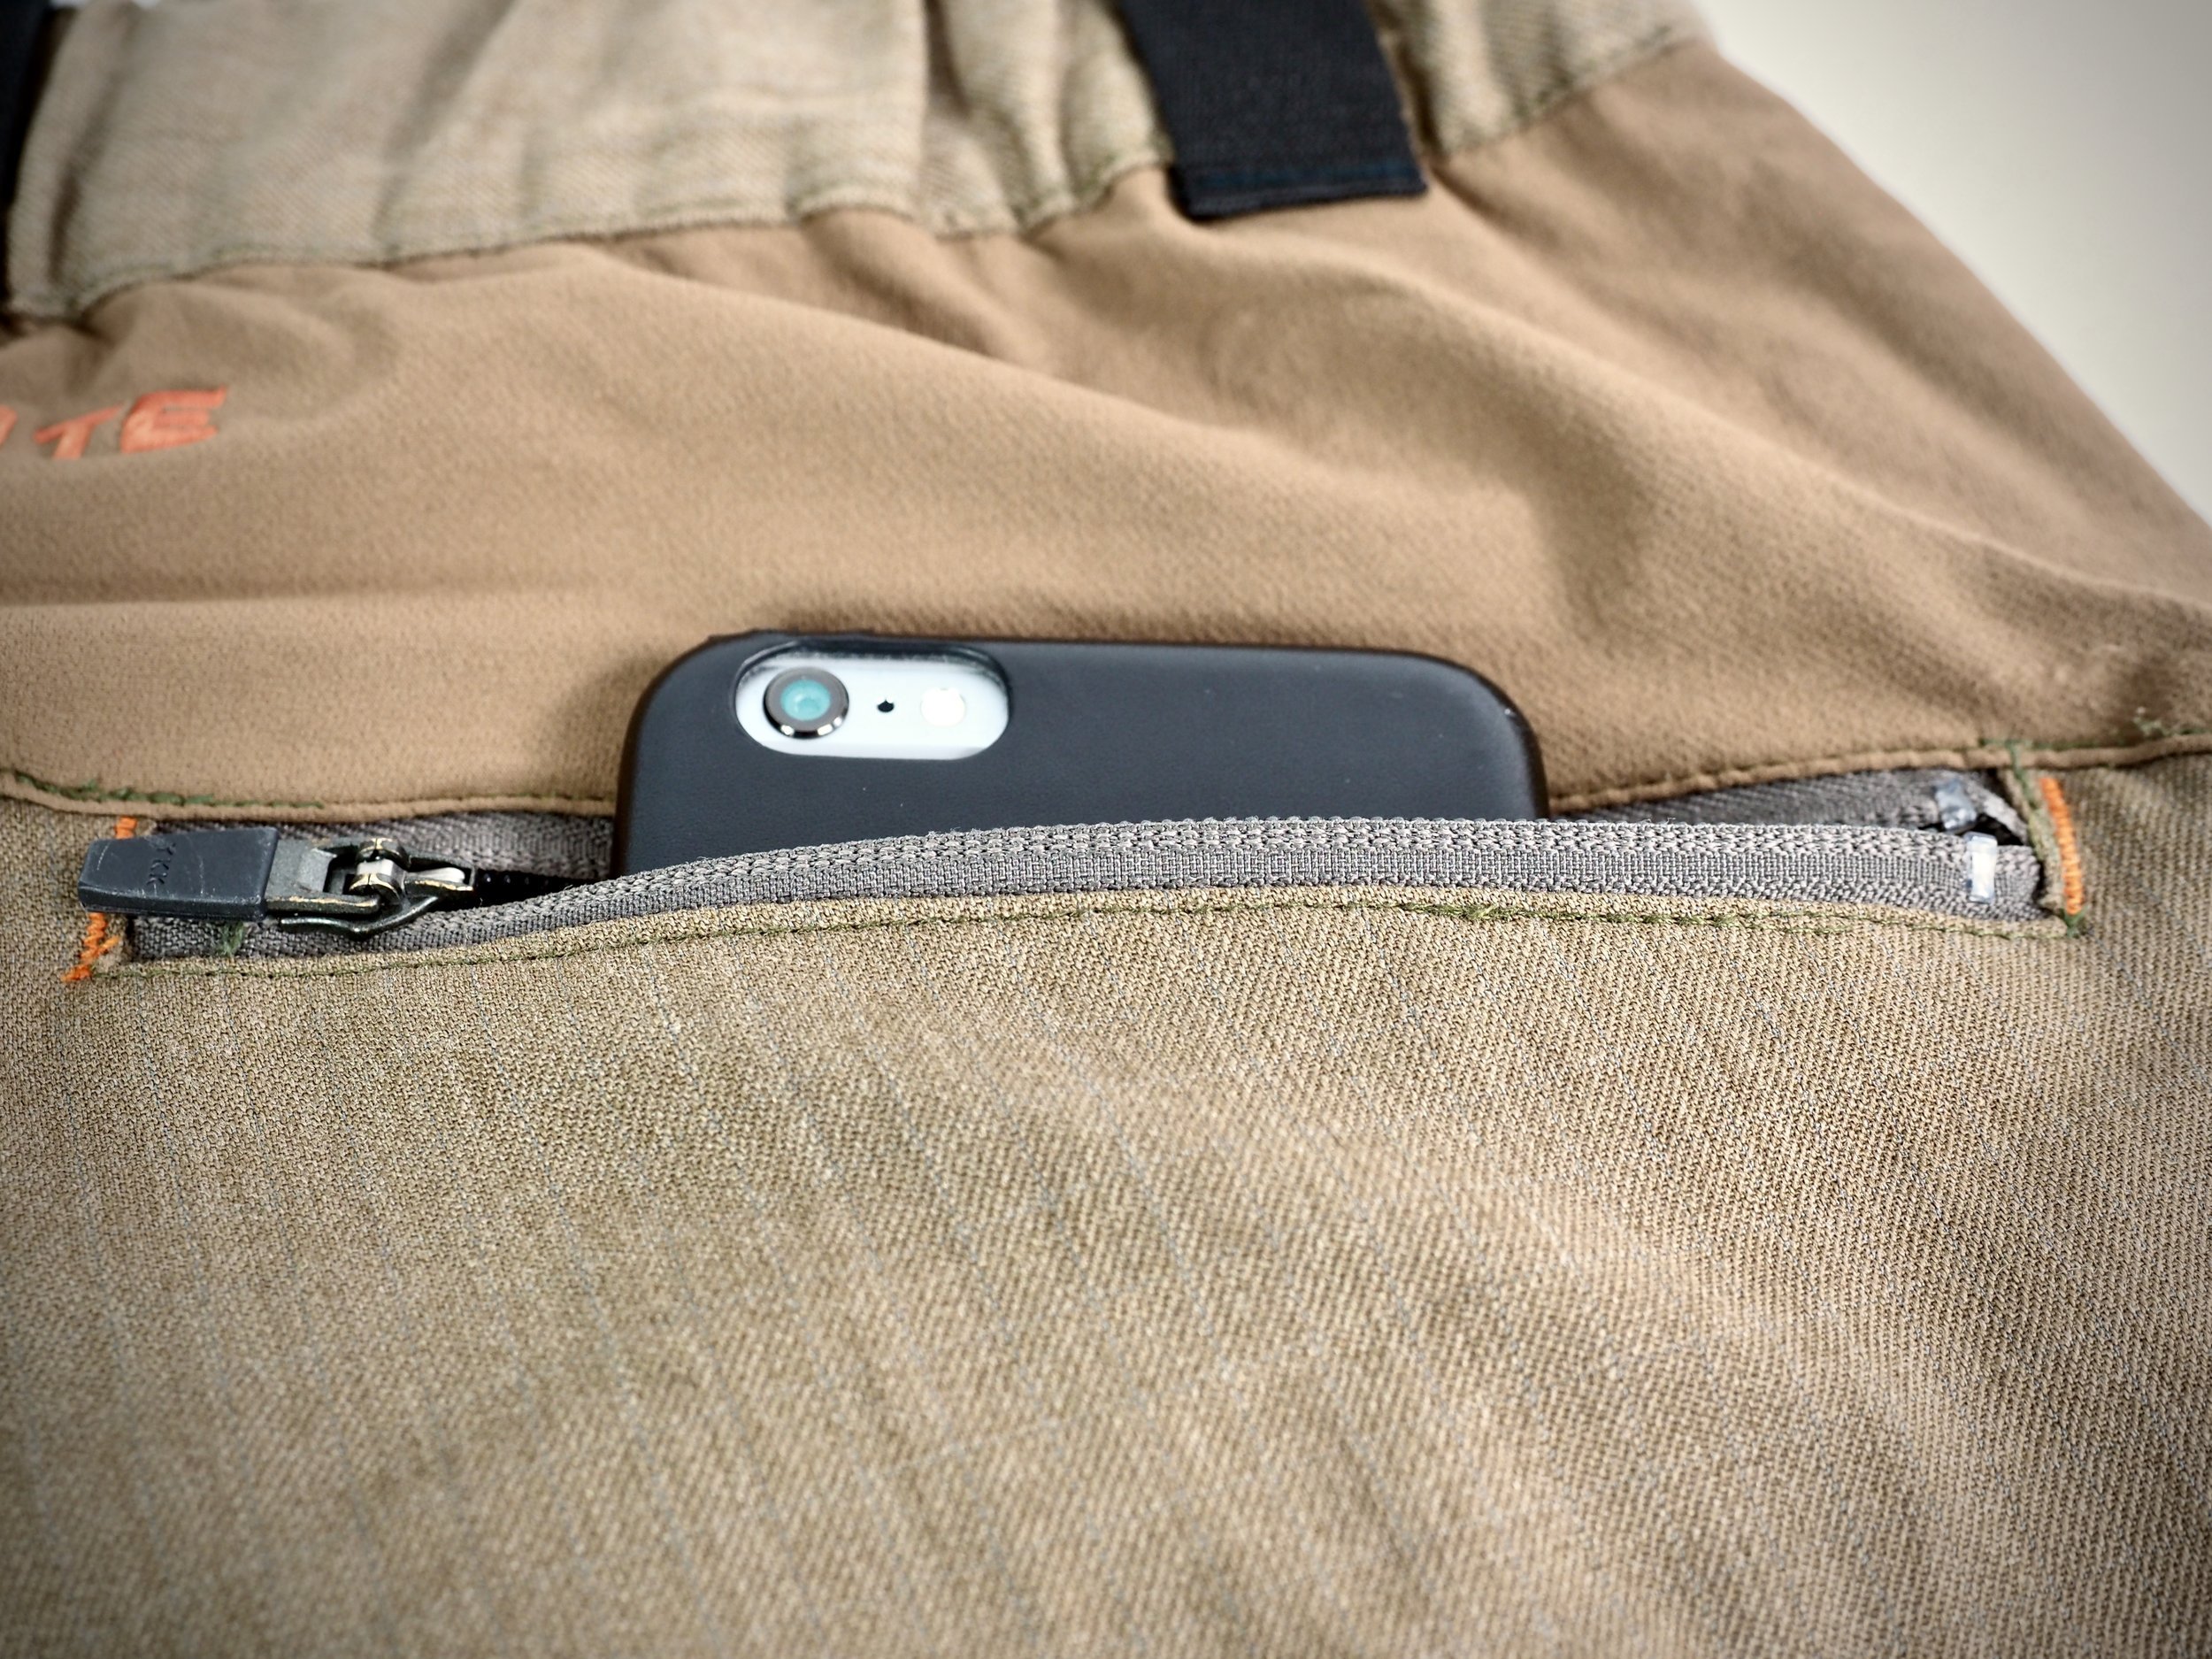 iPhone 6 Plus in comparison to the back pocket. Very usable.